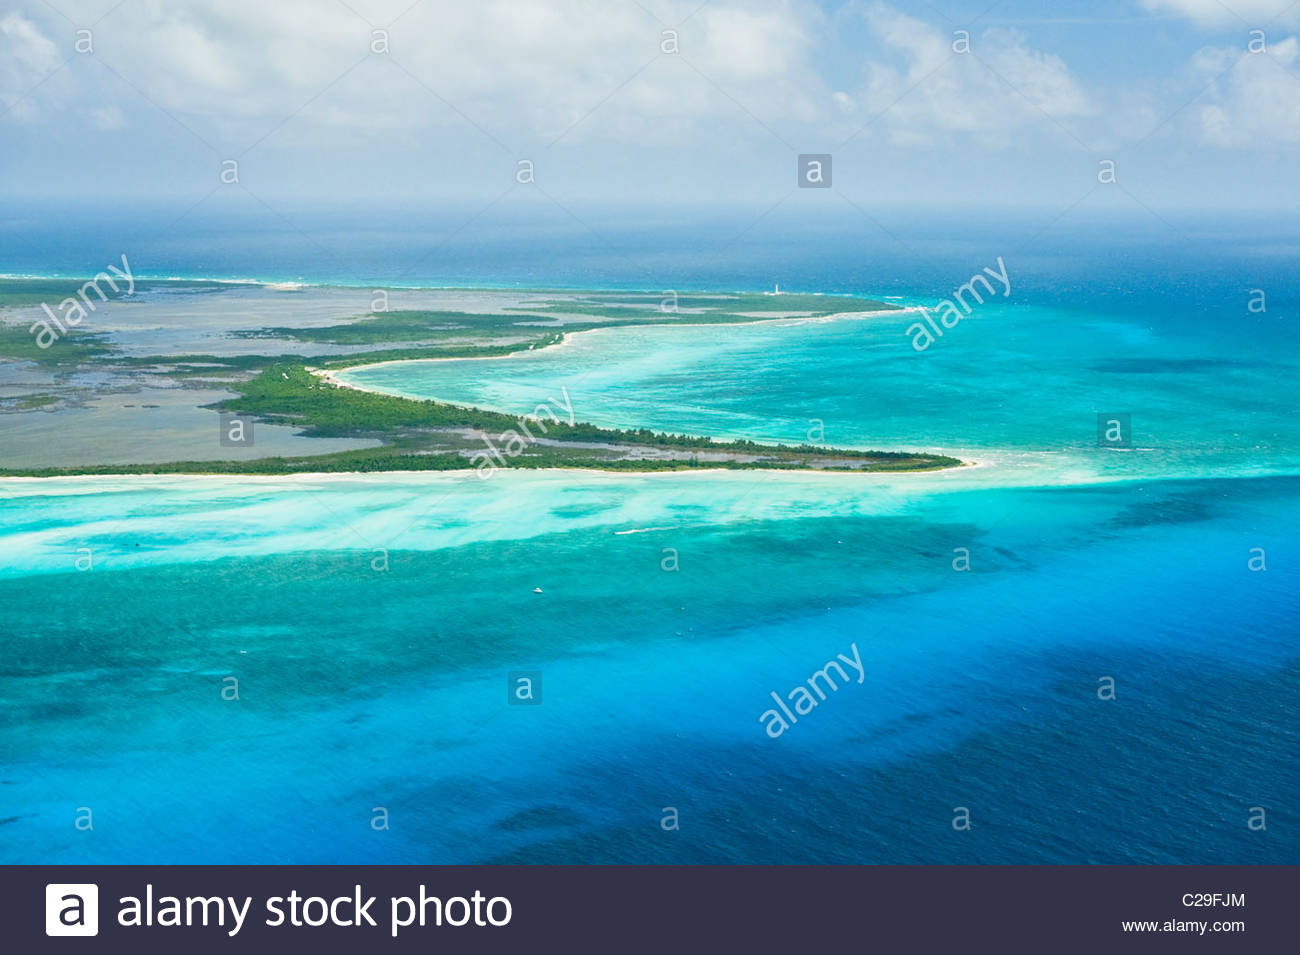 Aerial view of Punta Sur and Punta Celarain on the south coast of Cozumel, Mexico. - Stock Image